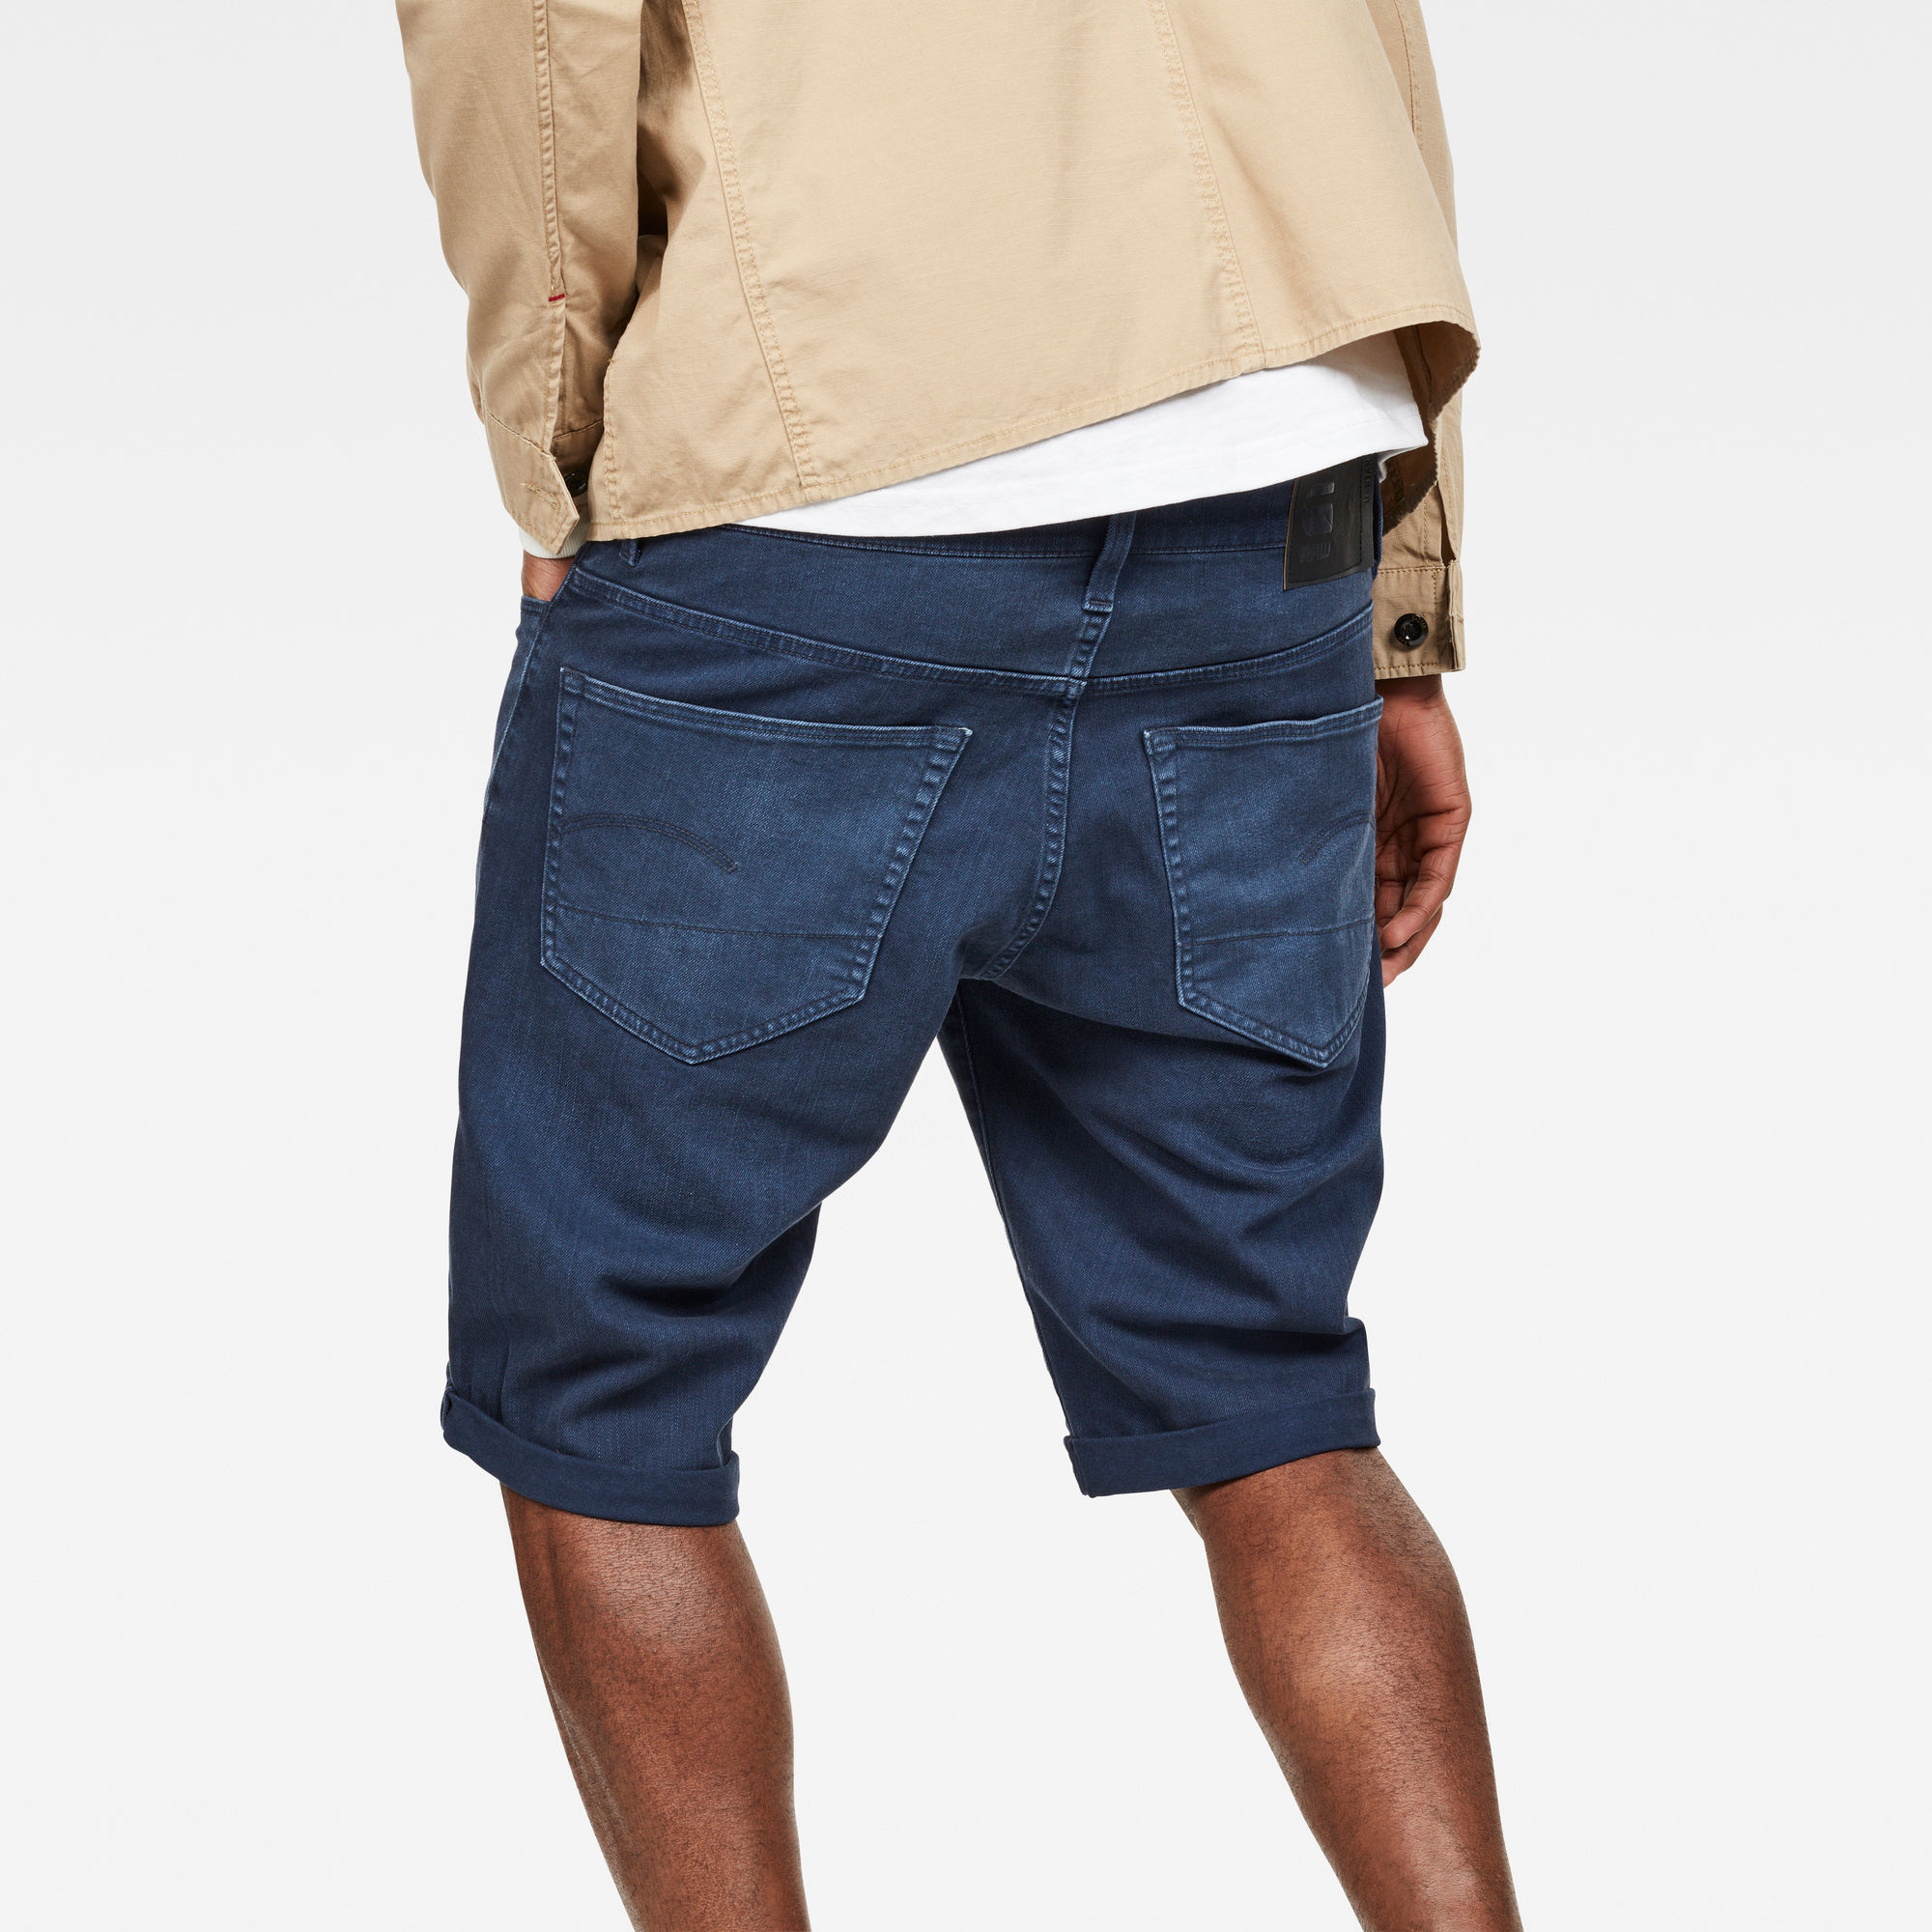 G-Star RAW 3301 Short